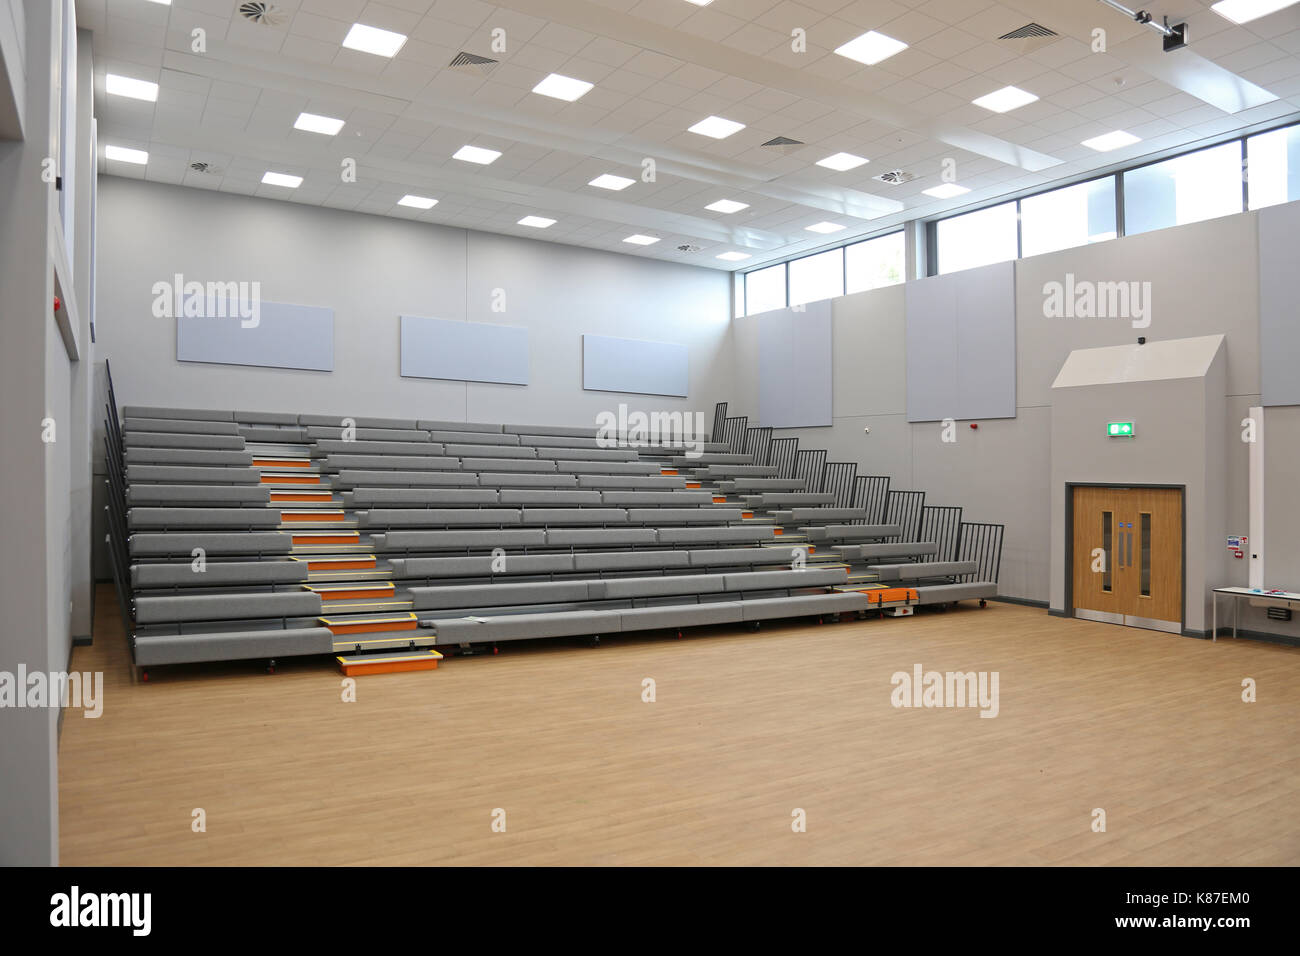 Interior of an assembly hall at a new London academy school. Shows retractable 'bleacher' seating in position for use. - Stock Image